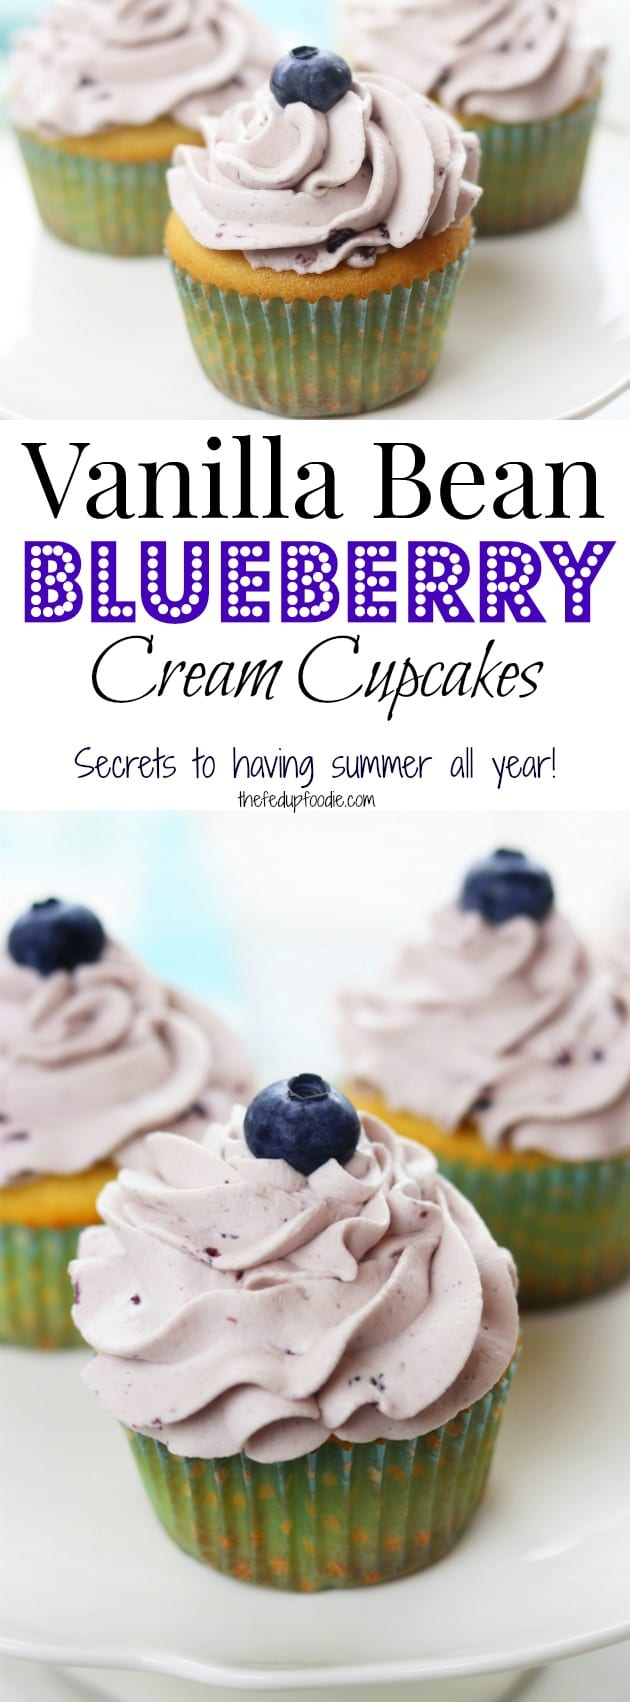 Vanilla Bean Blueberry Cream Cupcakes recipe creates moist and tender homemade cupcakes with a fluffy blueberry whipped cream frosting. These heavenly cupcakes are easy enough to make for an everyday treat but delicious enough for special occasions.